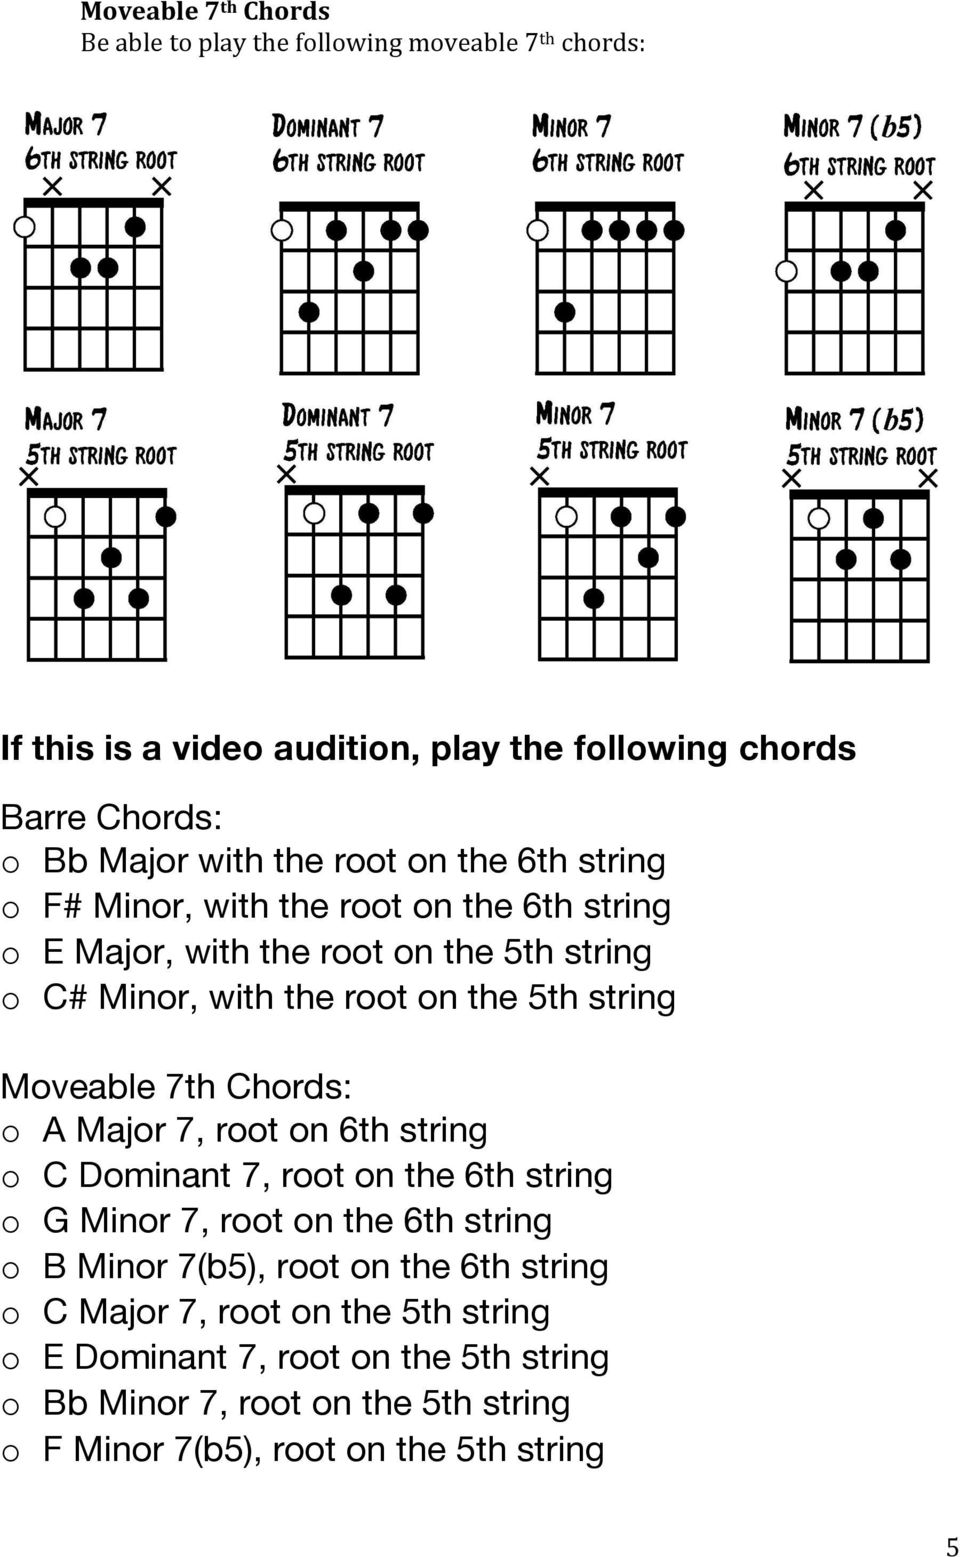 Moveable 7th Chords: o A Major 7, root on 6th string o C Dominant 7, root on the 6th string o G Minor 7, root on the 6th string o B Minor 7(b5), root on the